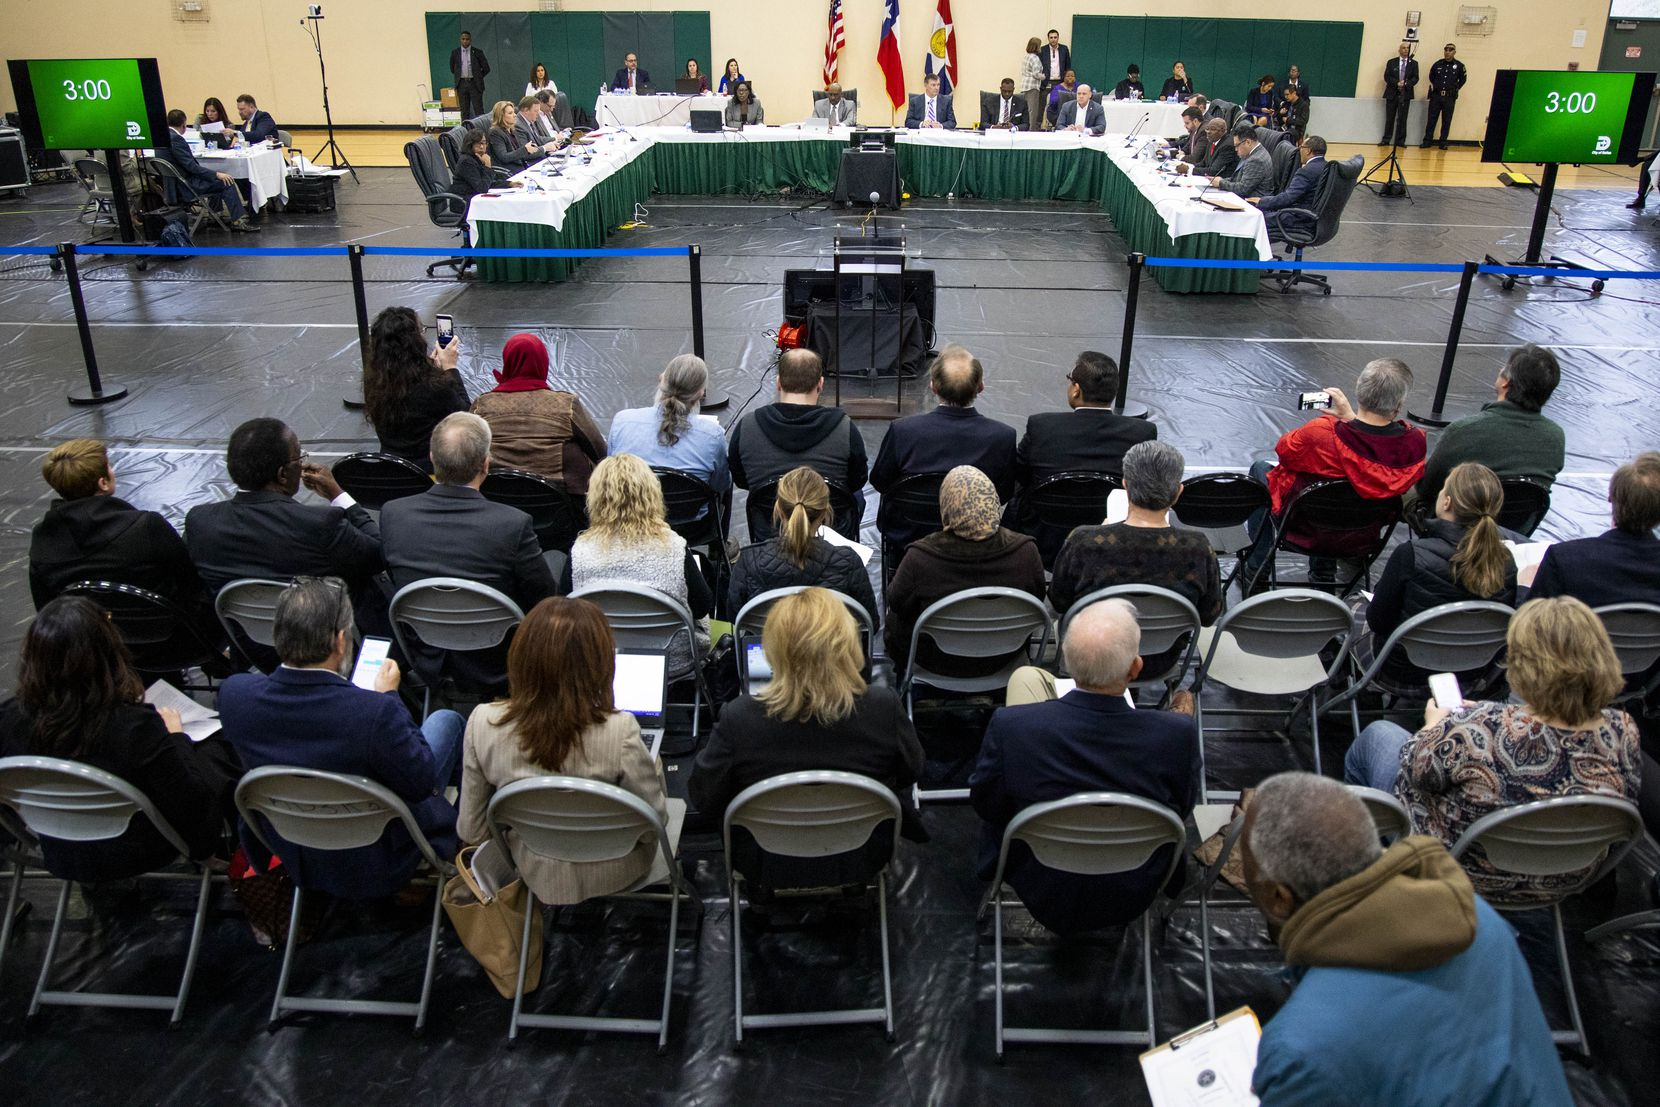 The Dallas City Council held its regular agenda meeting at the Park In the Woods Recreation Center in far southwest Dallas on Wednesday.